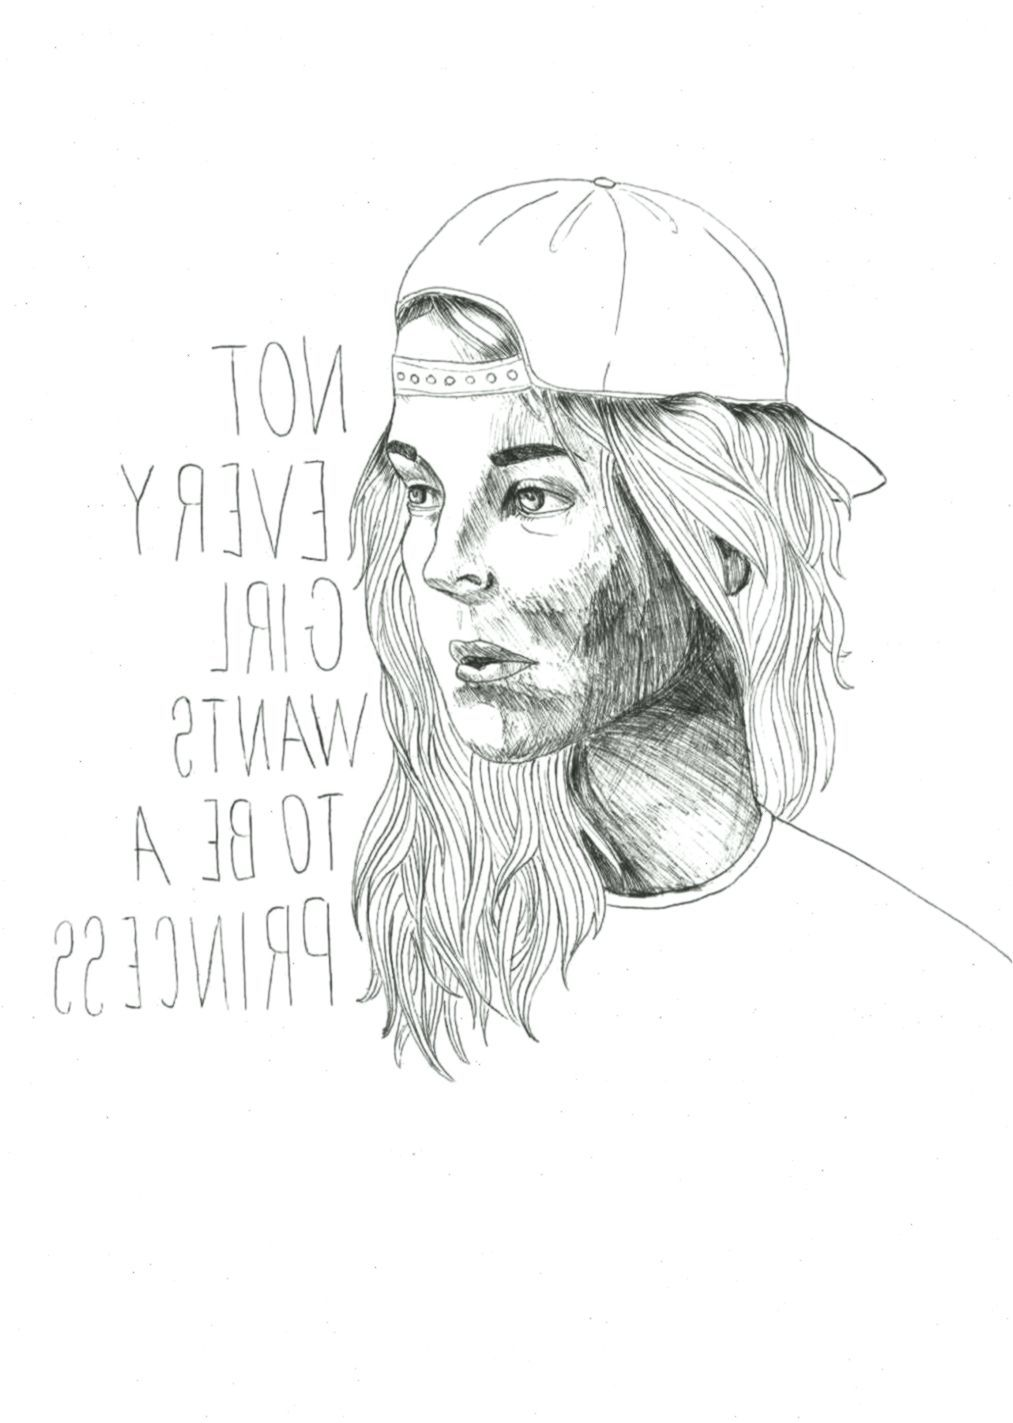 Cute Wallpapers For Tomboys : wallpapers, tomboys, Tomboy, Backgrounds, Wallpaper, #tomboyhairstyles, Wallpap...,, #Backgr..., Tomboy,, Wallpaper,, Sketches